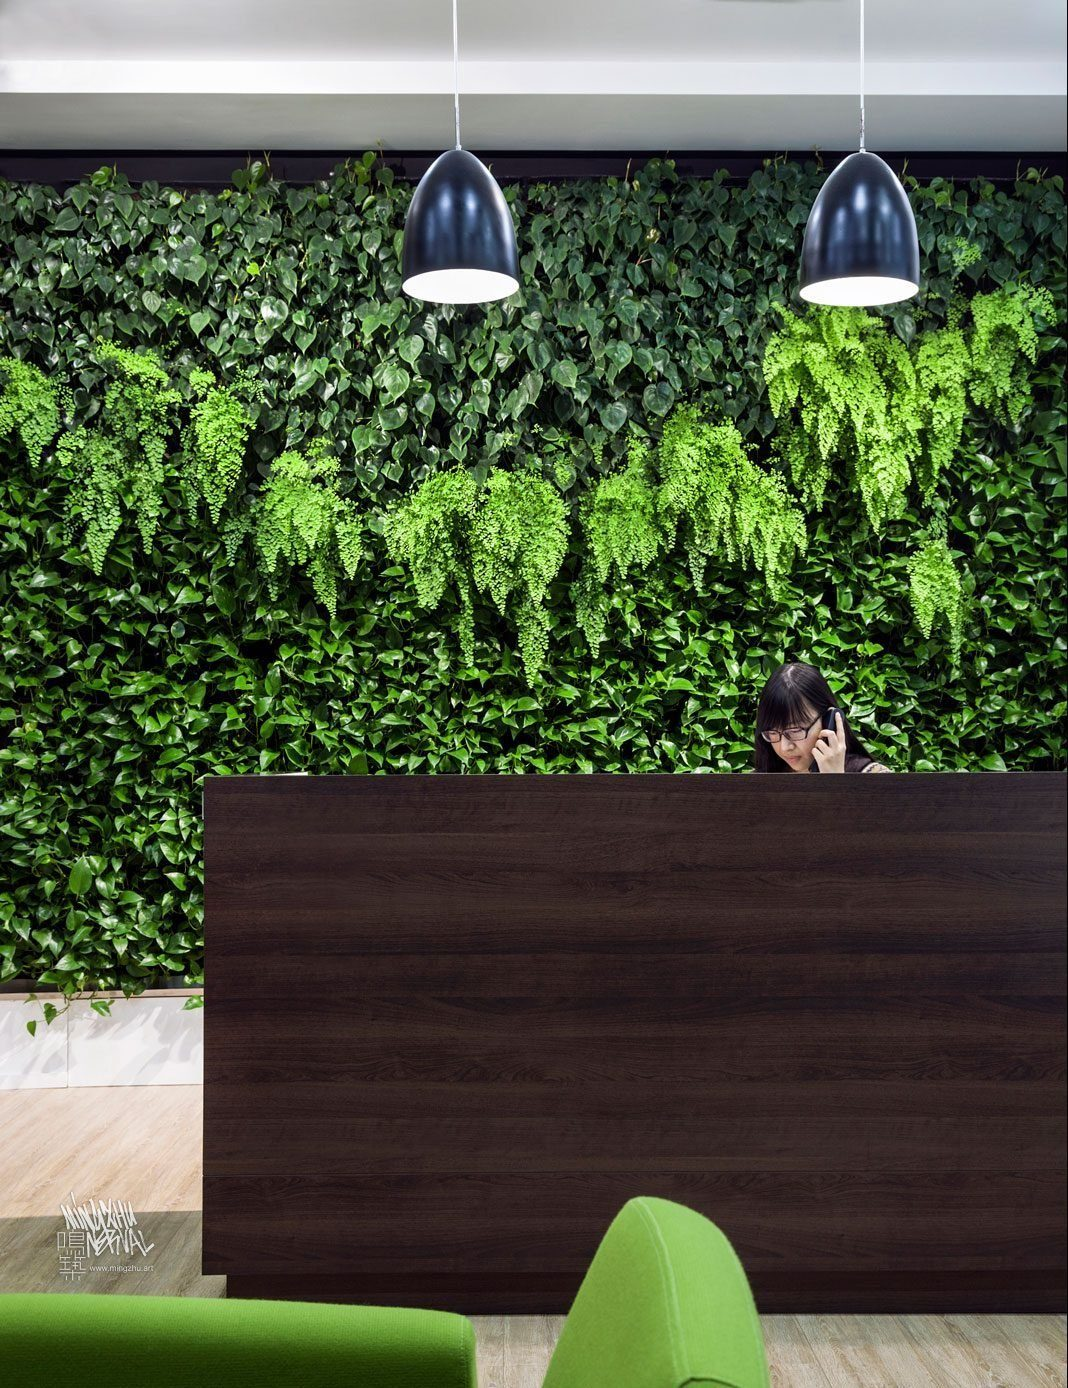 At Mingzhu Nerval, we thrive at creating the most beautiful vertical gardens in the world. For SCA, we created a fresh living wall design - Shanghai, 2011.